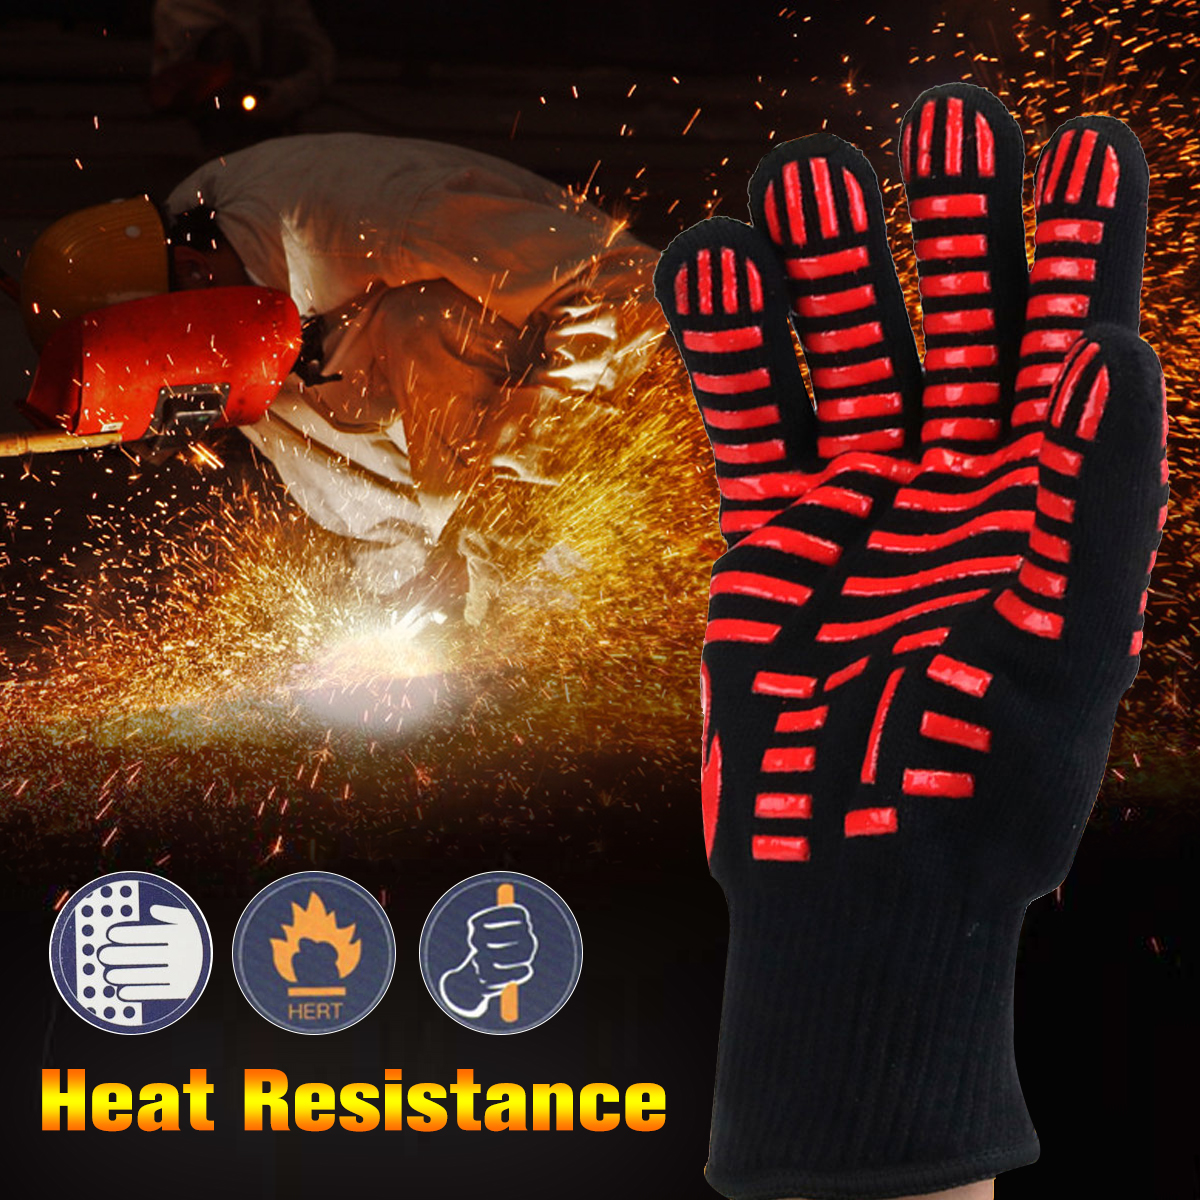 Fire Insulation Safety Gloves Heat Resistant Glove Aramid BBQ Glove Oven Kitchen Glove Direct Supply Forearm Protection 1 pair free shipping aramid fire insulation gloves heat resistant glove 932f bbq glove oven kitchen glove direct supply